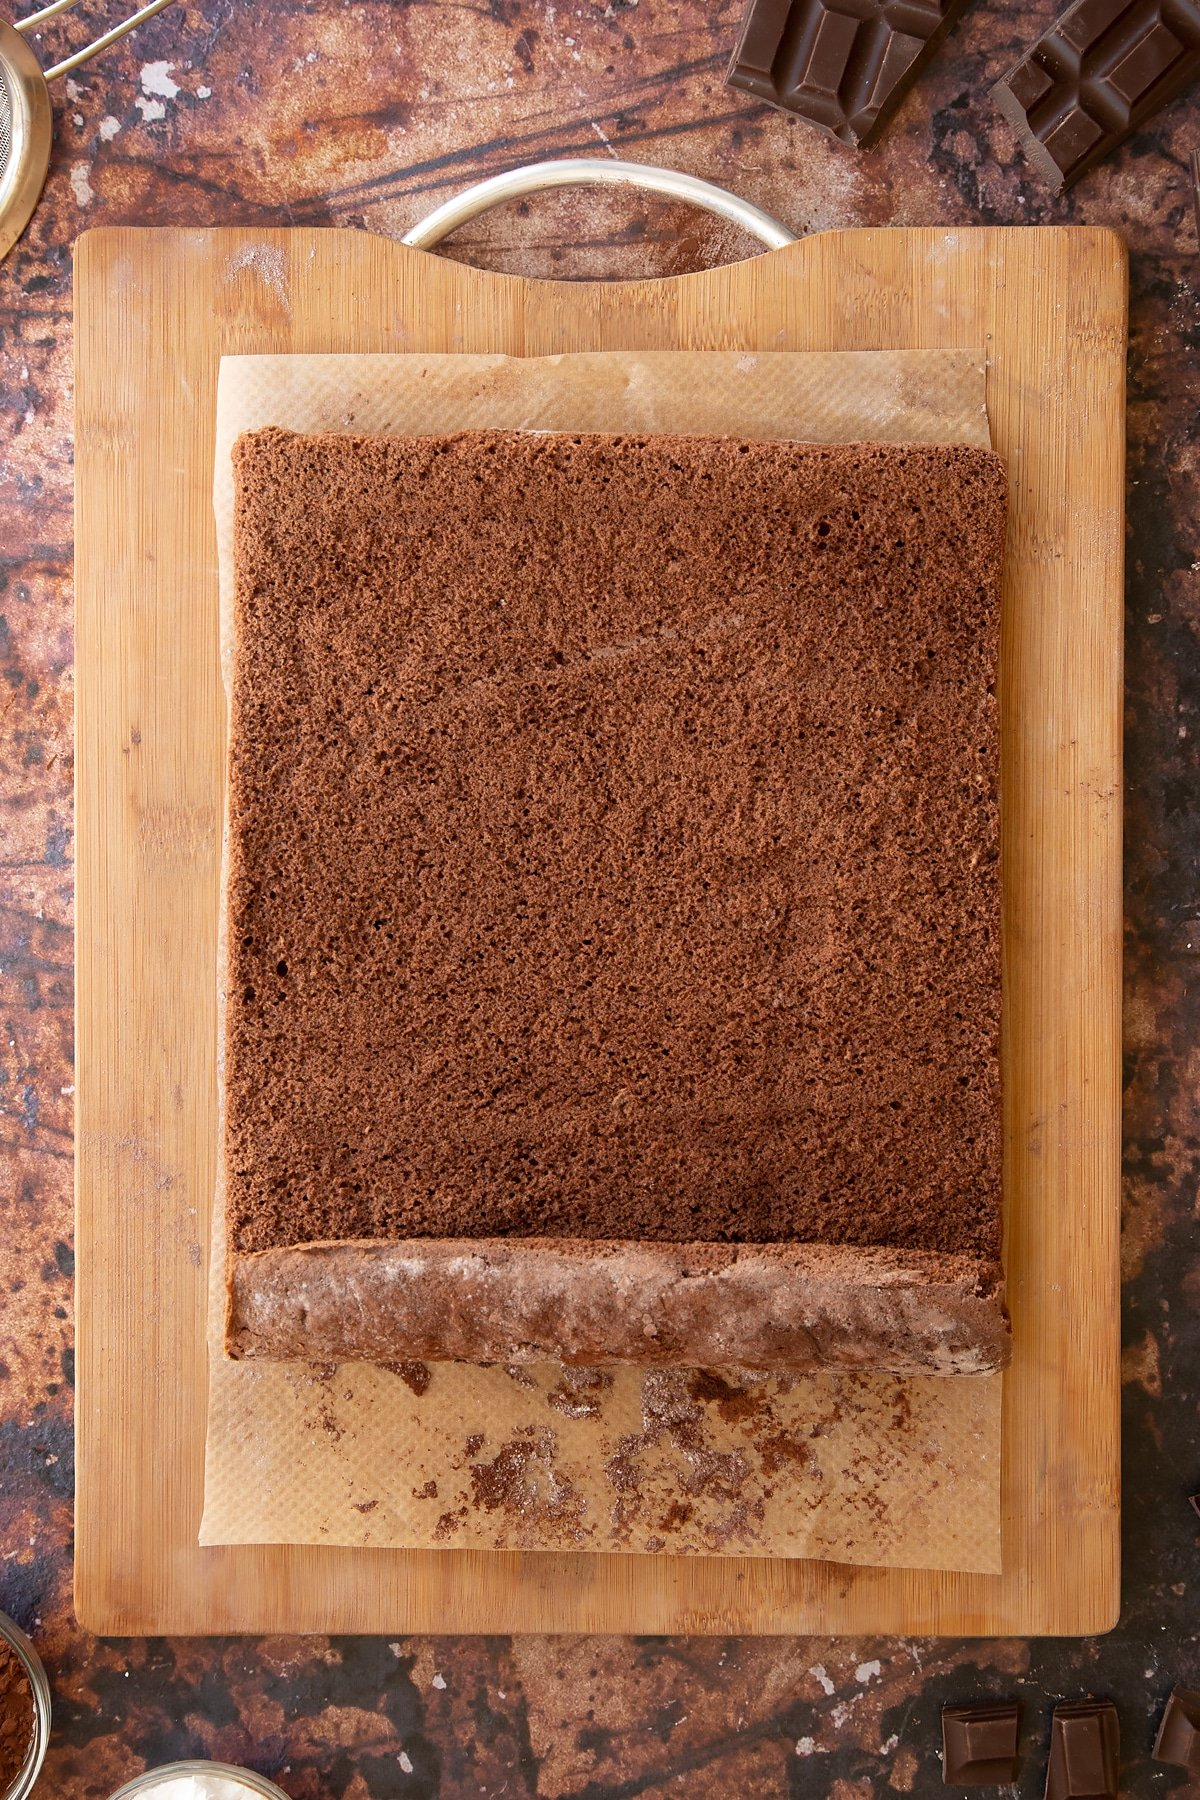 A chocolate sponge unrolled on a wooden board and baking paper dusted with cocoa and icing sugar.